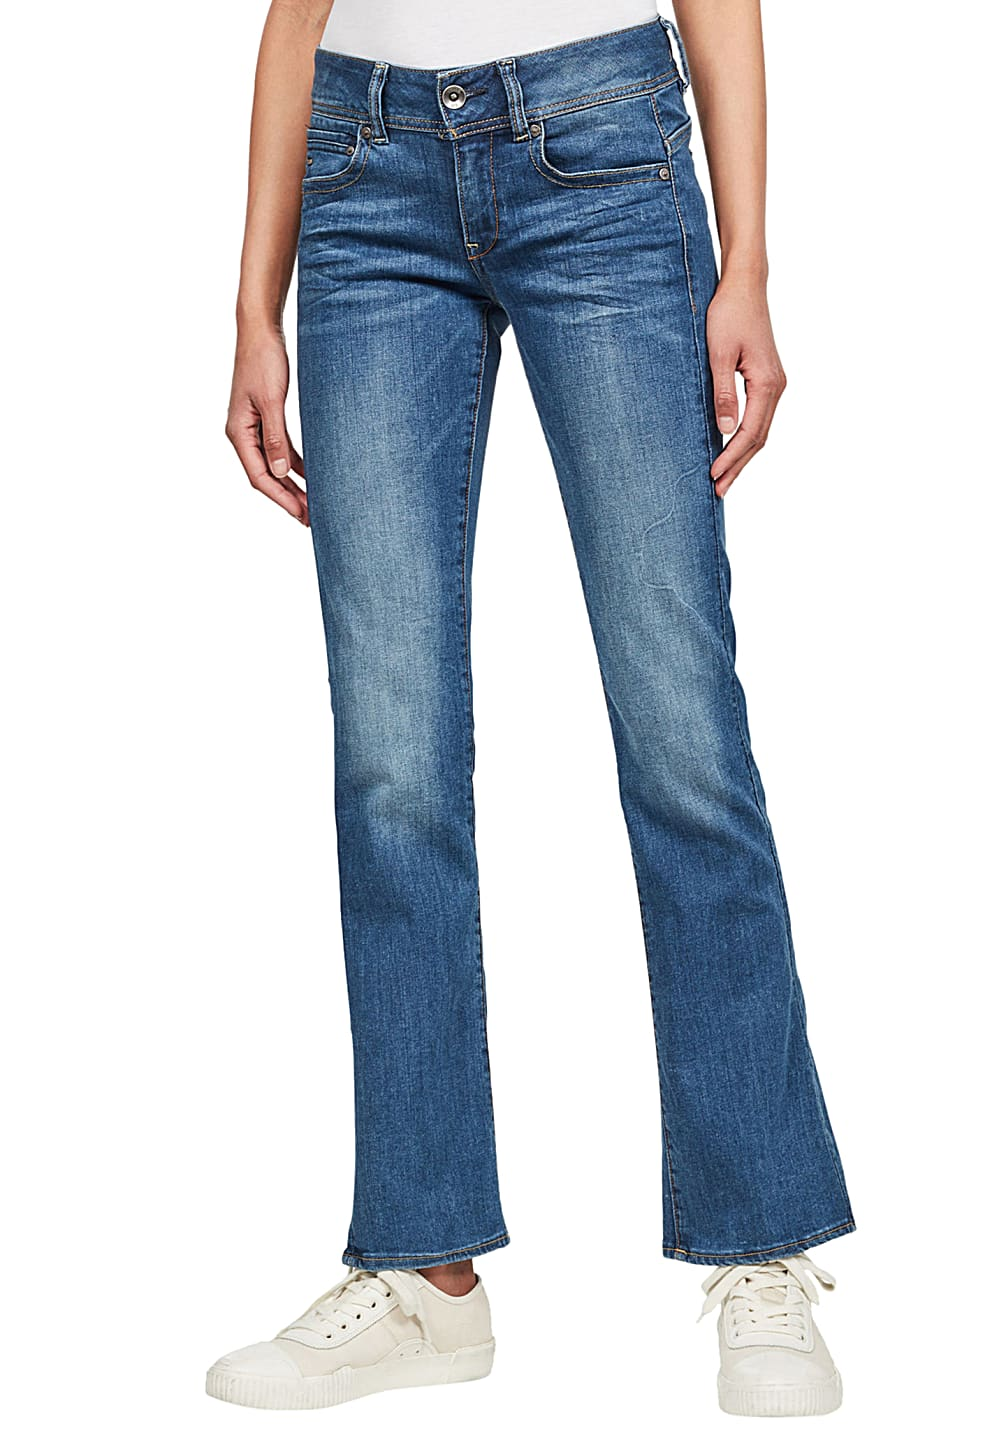 G-STAR RAW Midge Mid Bootcut Neutro Stretch - Jeans für Damen - Blau